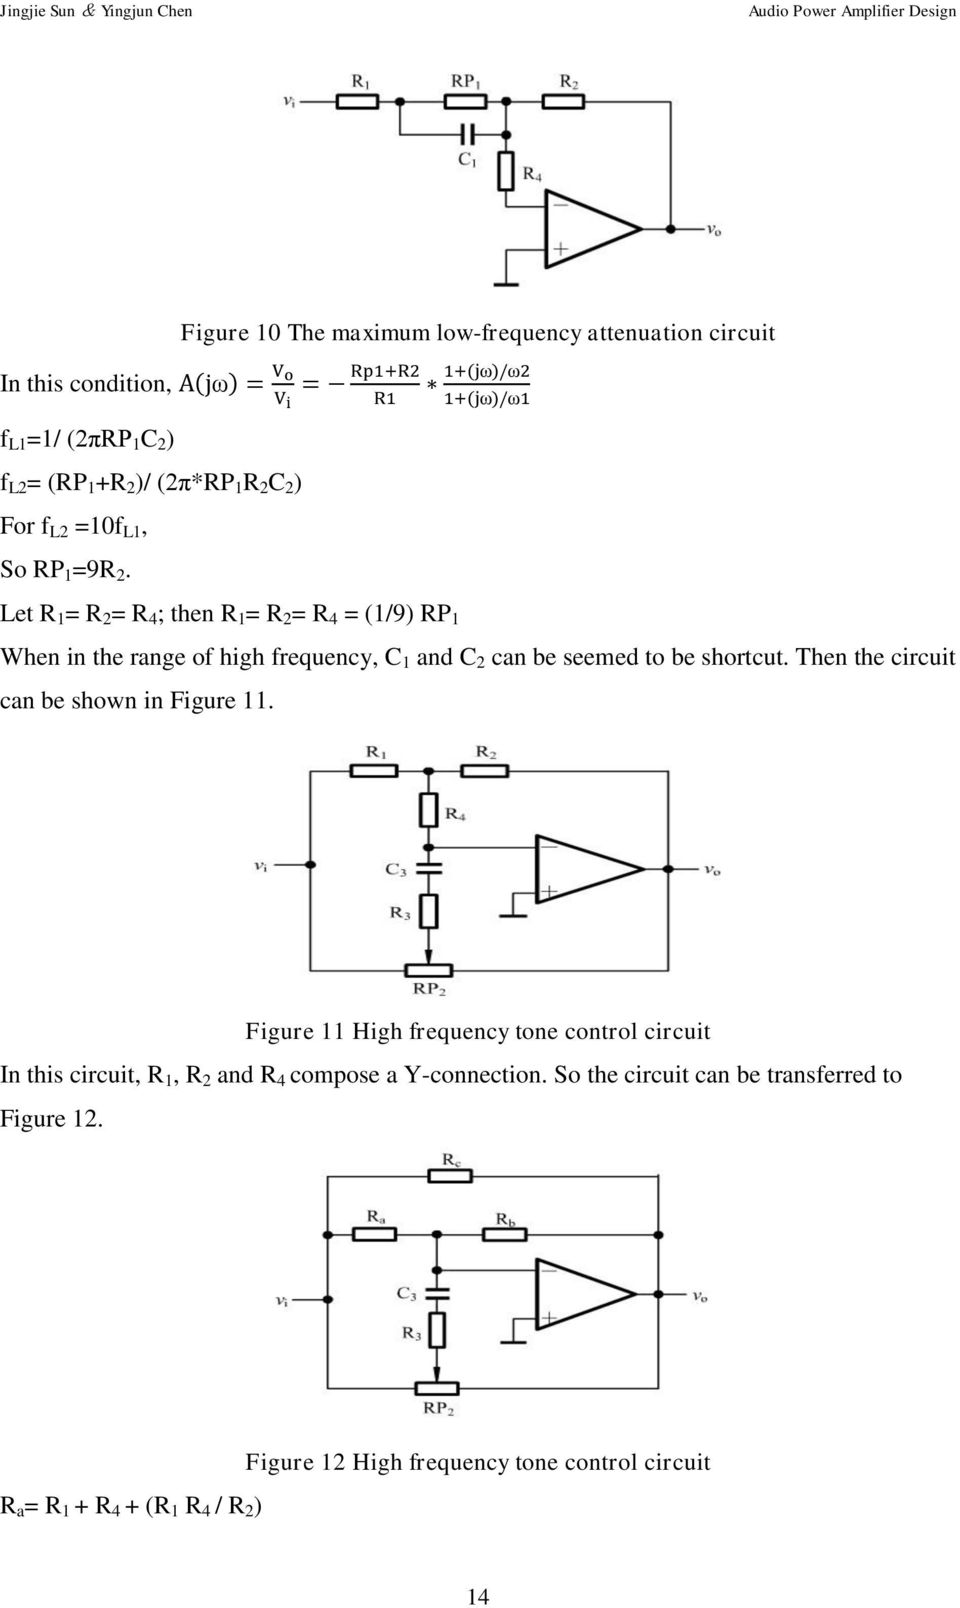 Audio Power Amplifier Design Pdf Guidelines For Bipolar Transistor Preamplifier Circuits Let R 1 2 4 Then